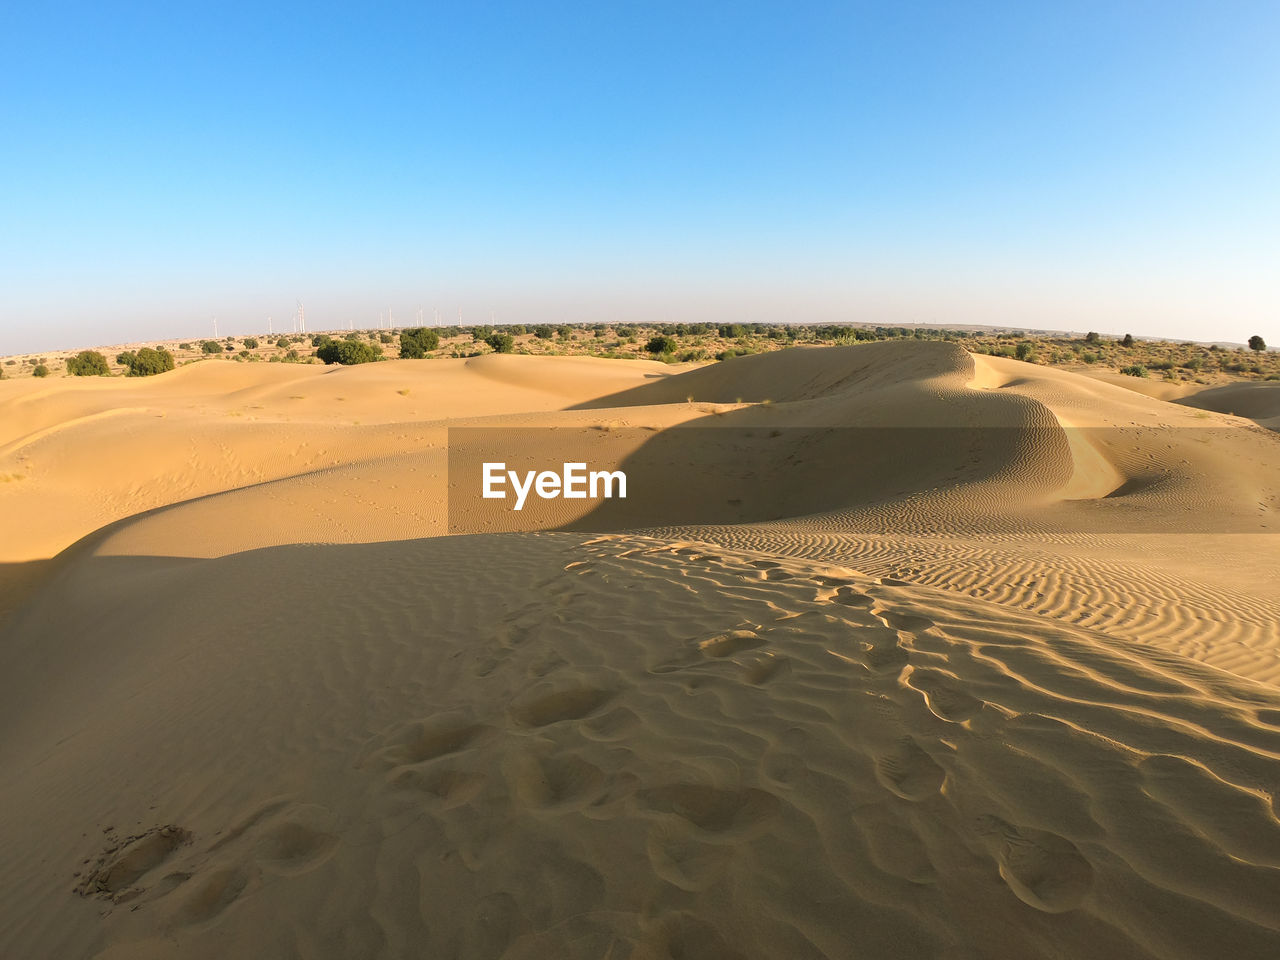 sand, desert, sand dune, sky, arid climate, scenics - nature, landscape, clear sky, land, climate, environment, beauty in nature, tranquility, tranquil scene, non-urban scene, day, nature, no people, remote, copy space, outdoors, atmospheric